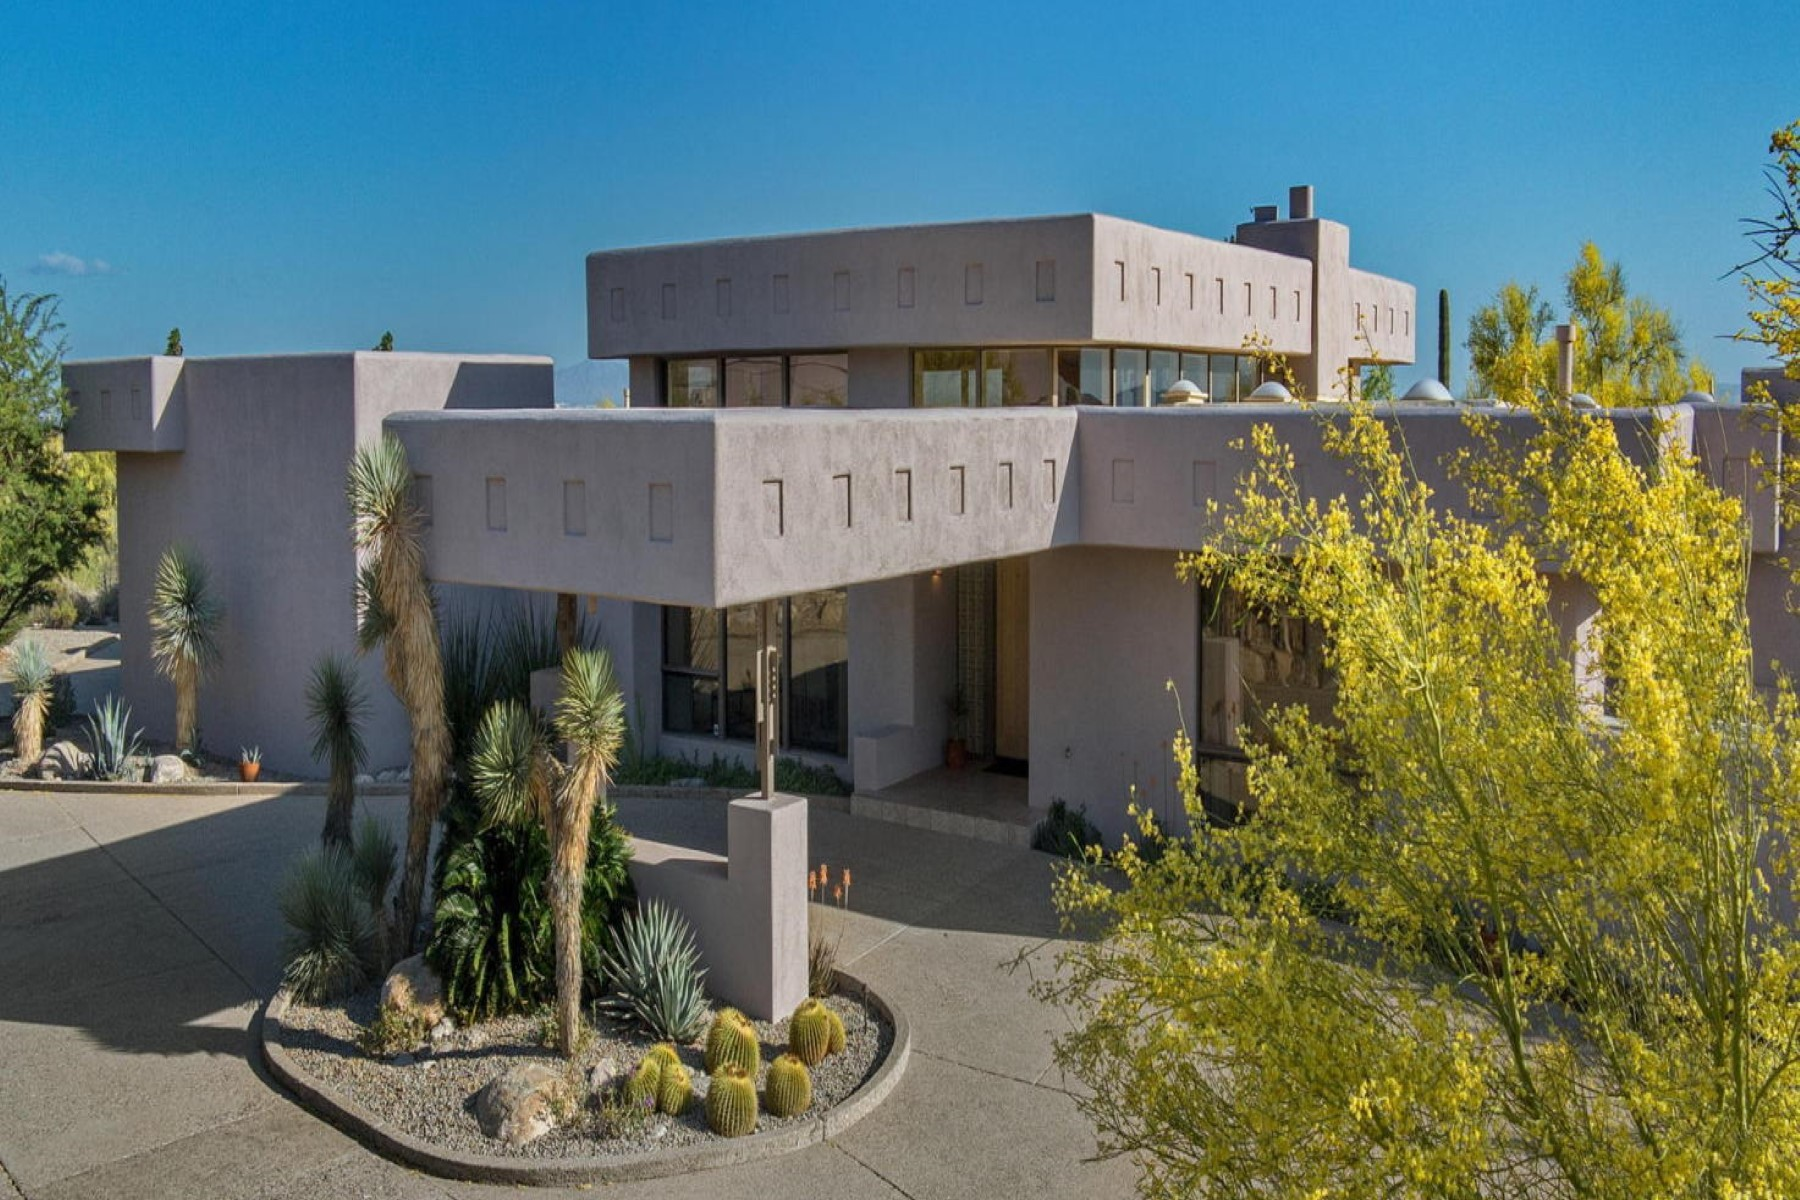 Single Family Home for Sale at Spectacular desert contemporary home designed by Tyson 5783 N Placita Juan Paisano Tucson, Arizona, 85718 United States